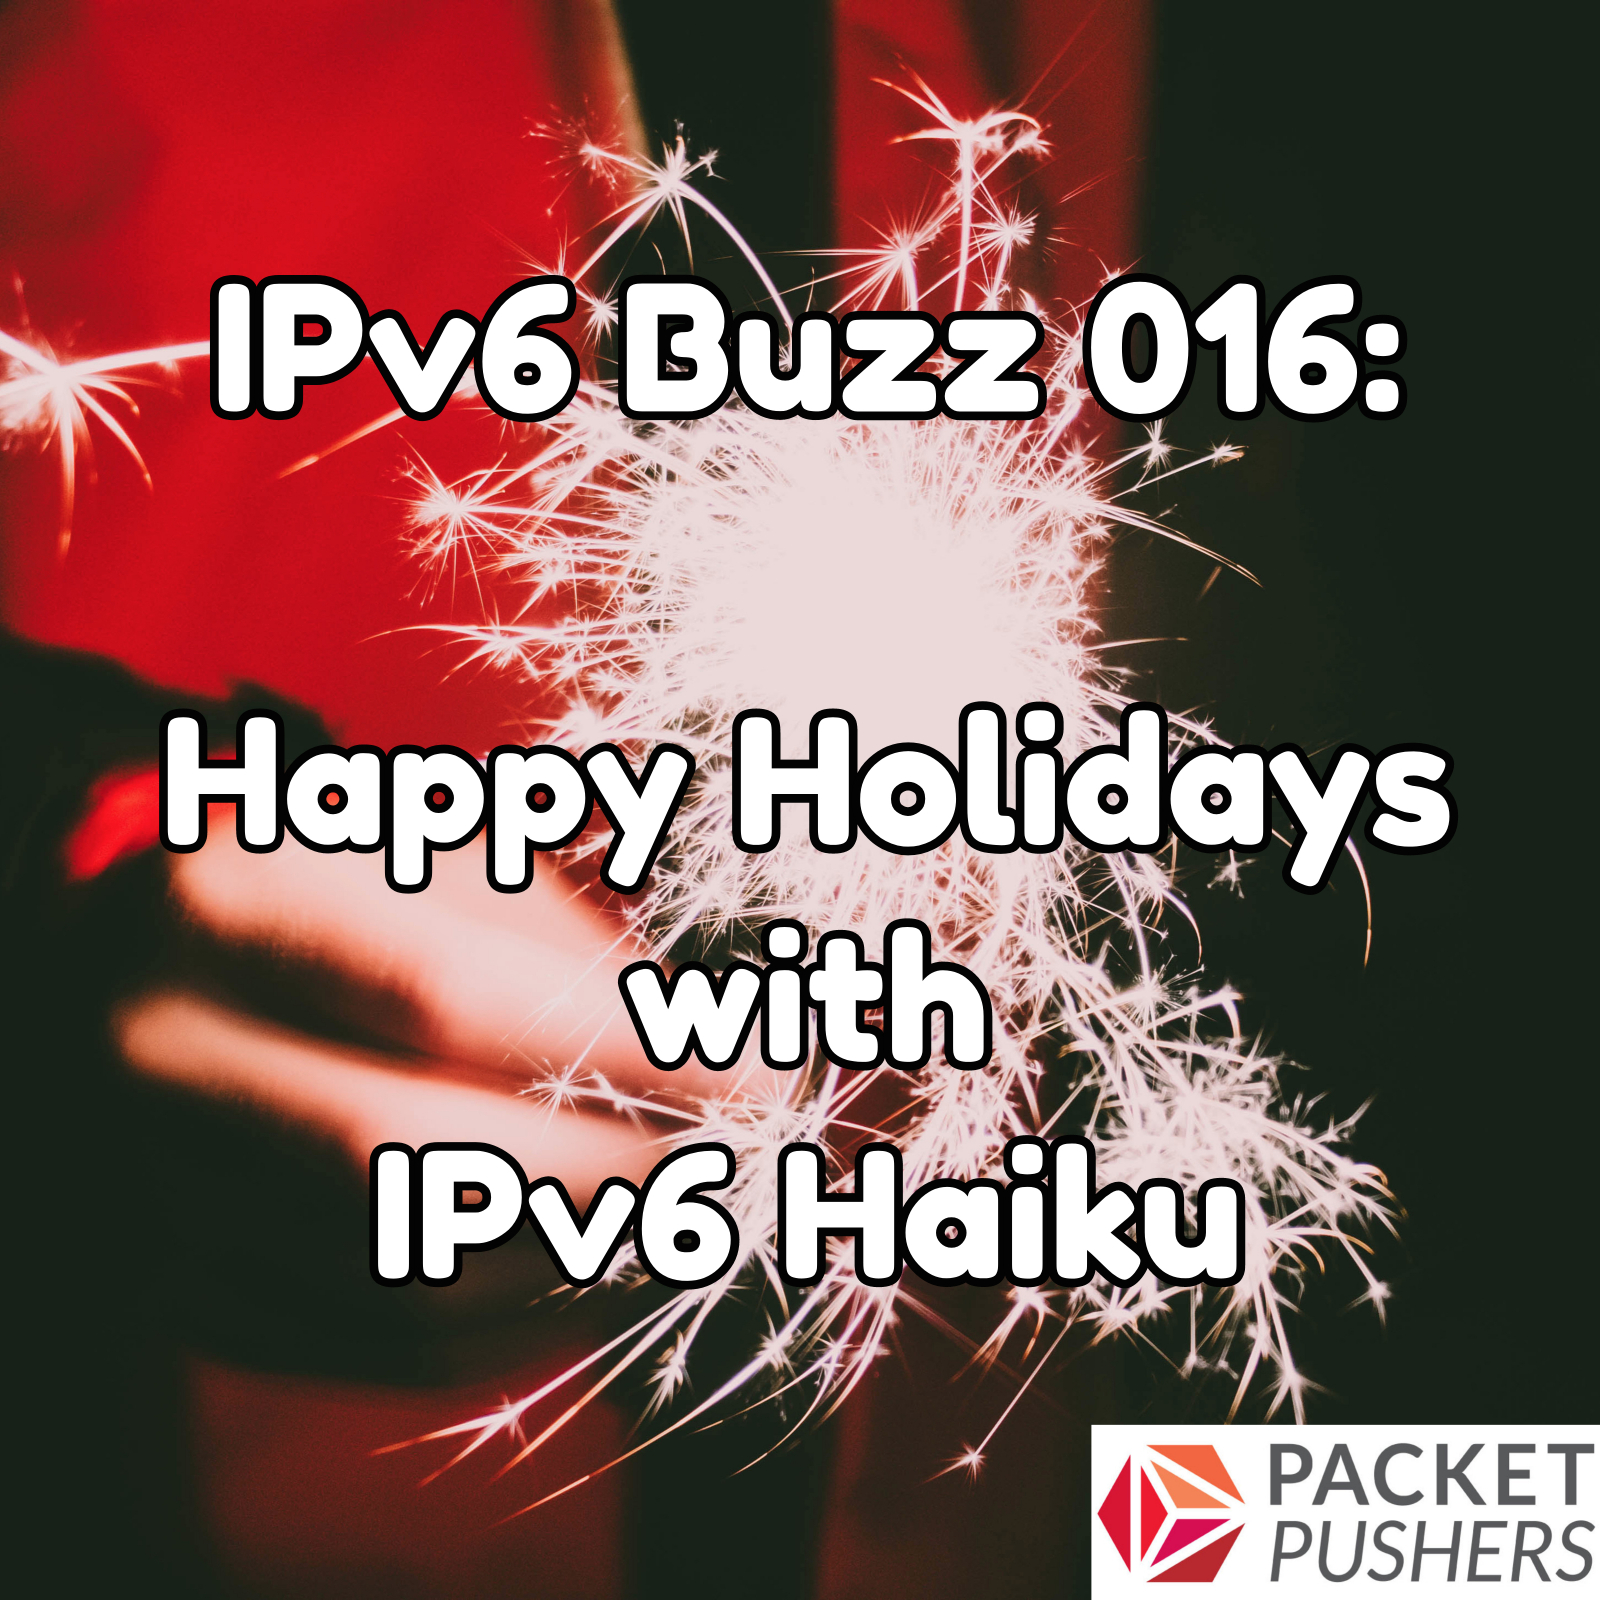 Happy Holidays With IPv6 Haiku